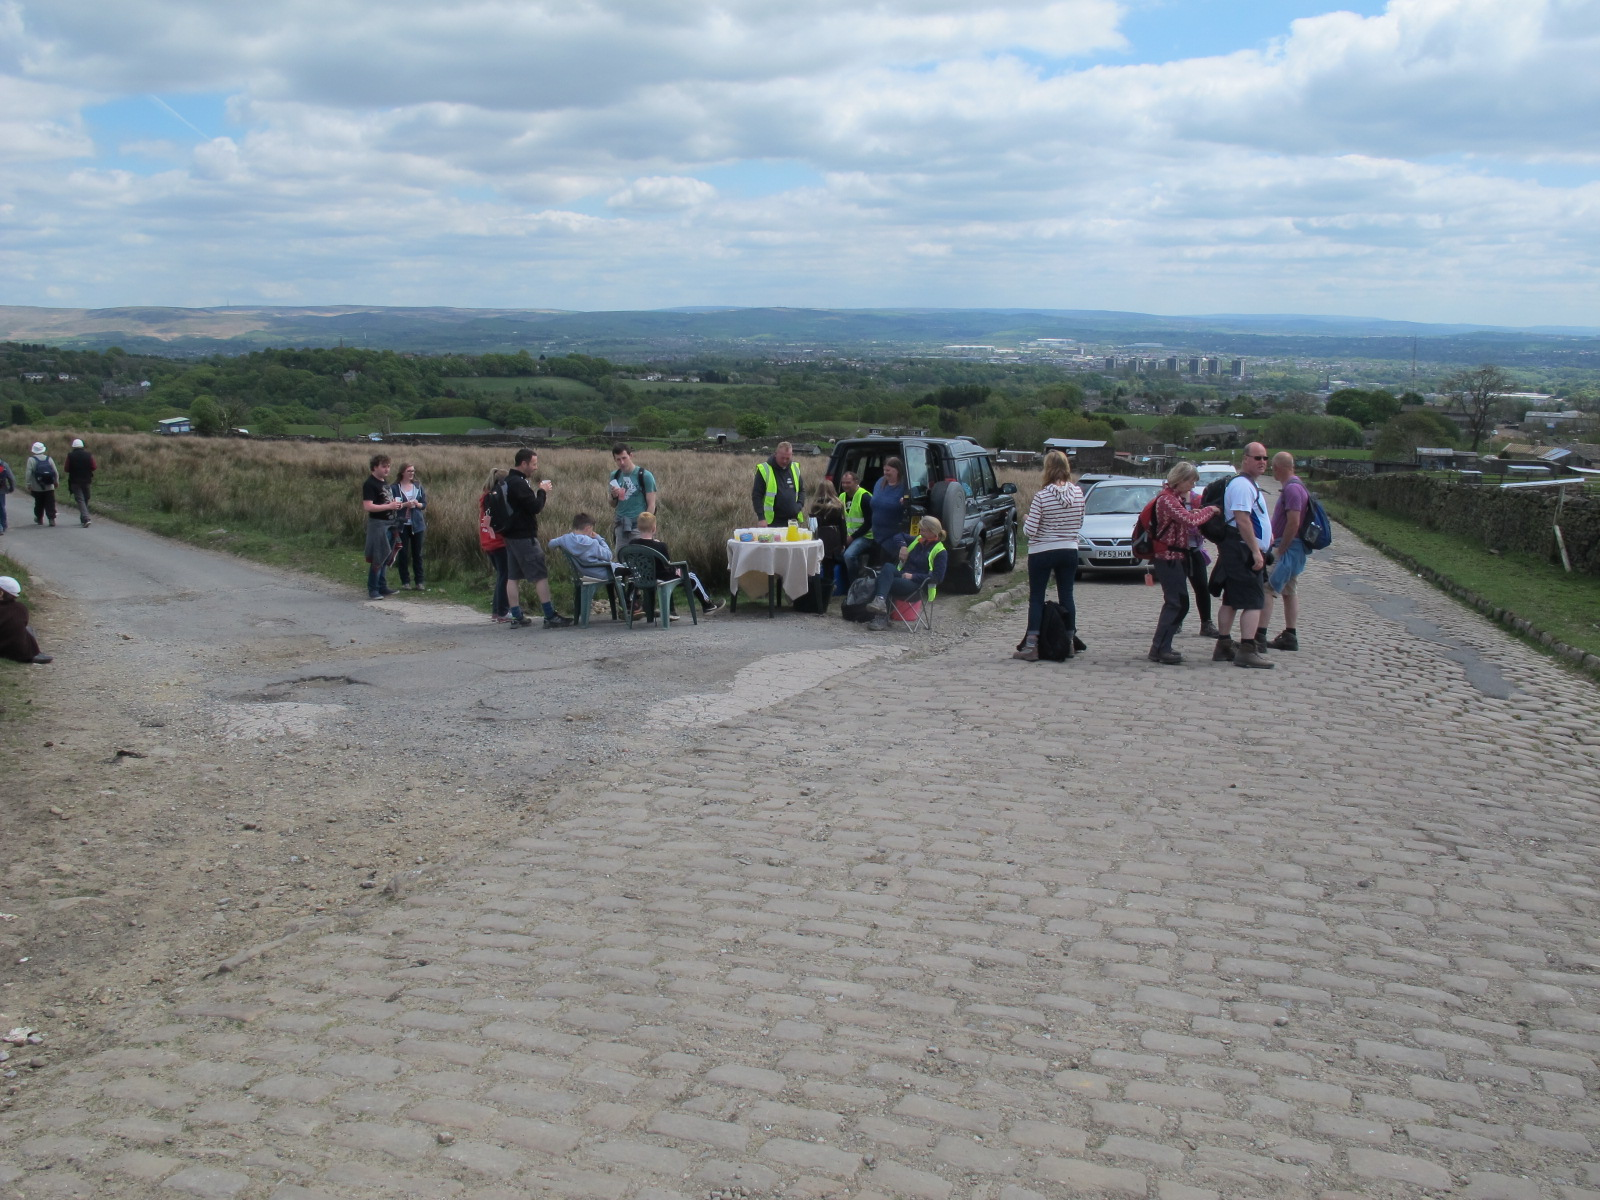 Rooley Moor Road - Checkpoint 4 #5